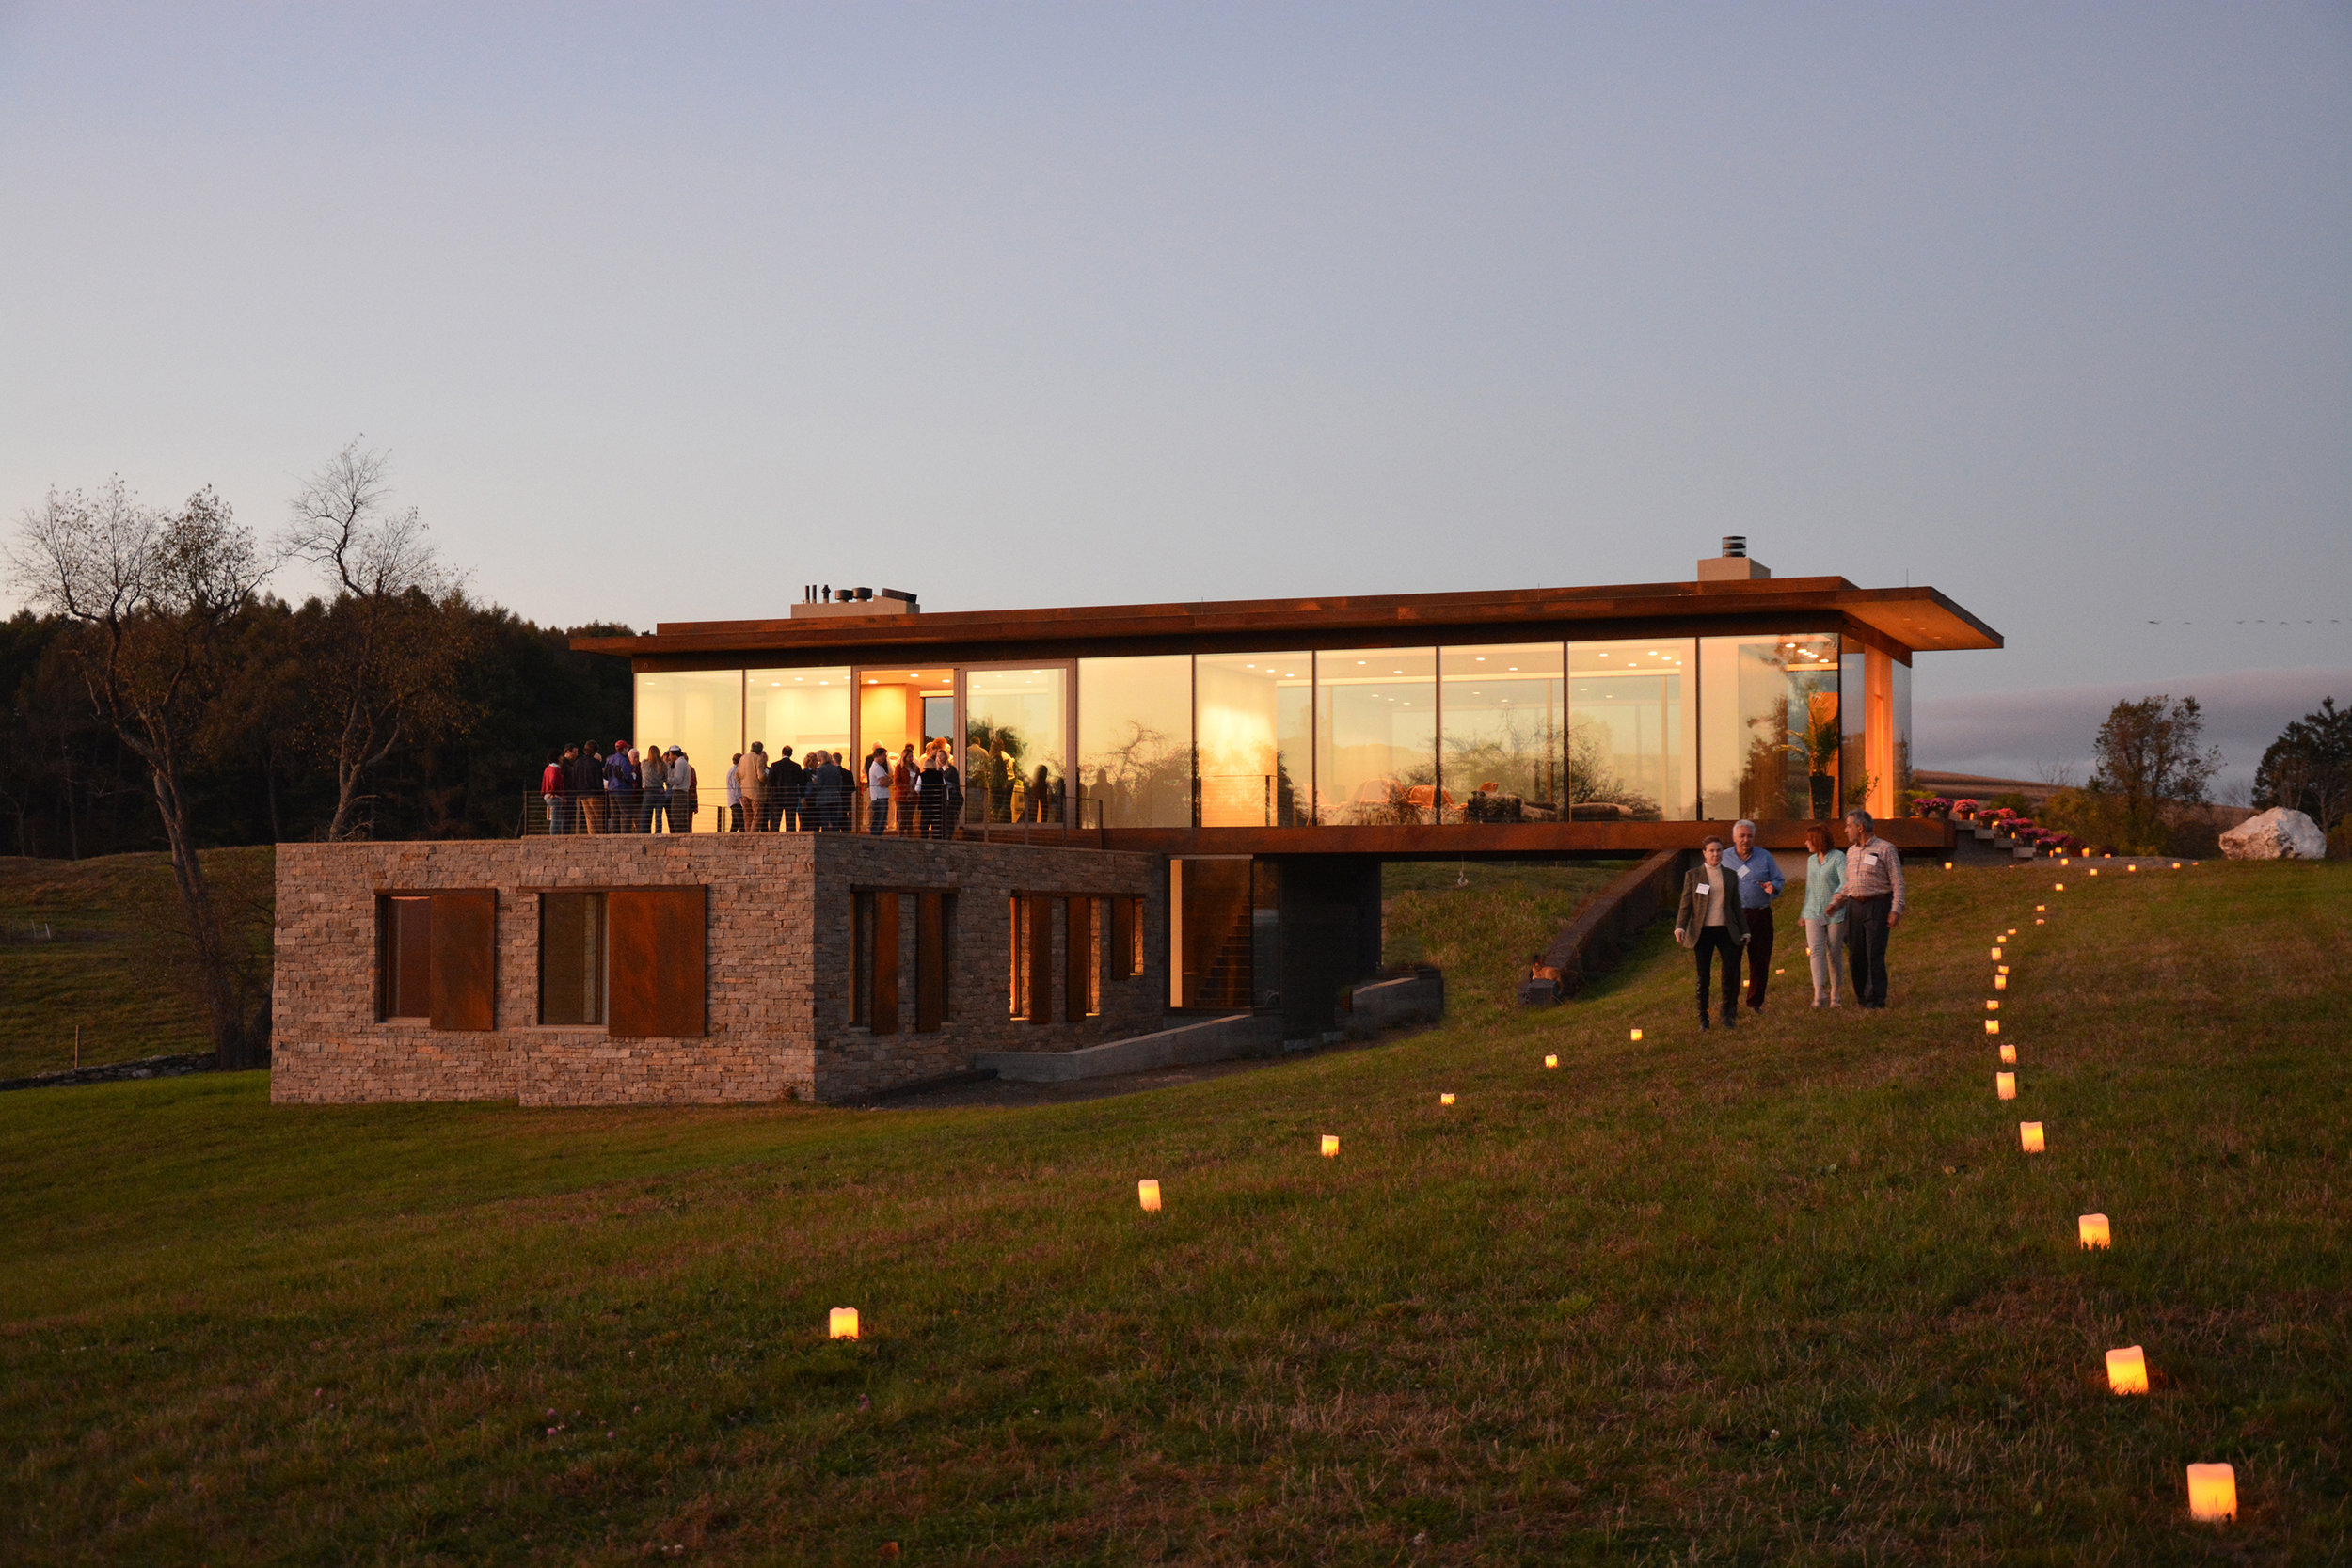 Slade Architecture's most recently completed project - a home in upstate NY